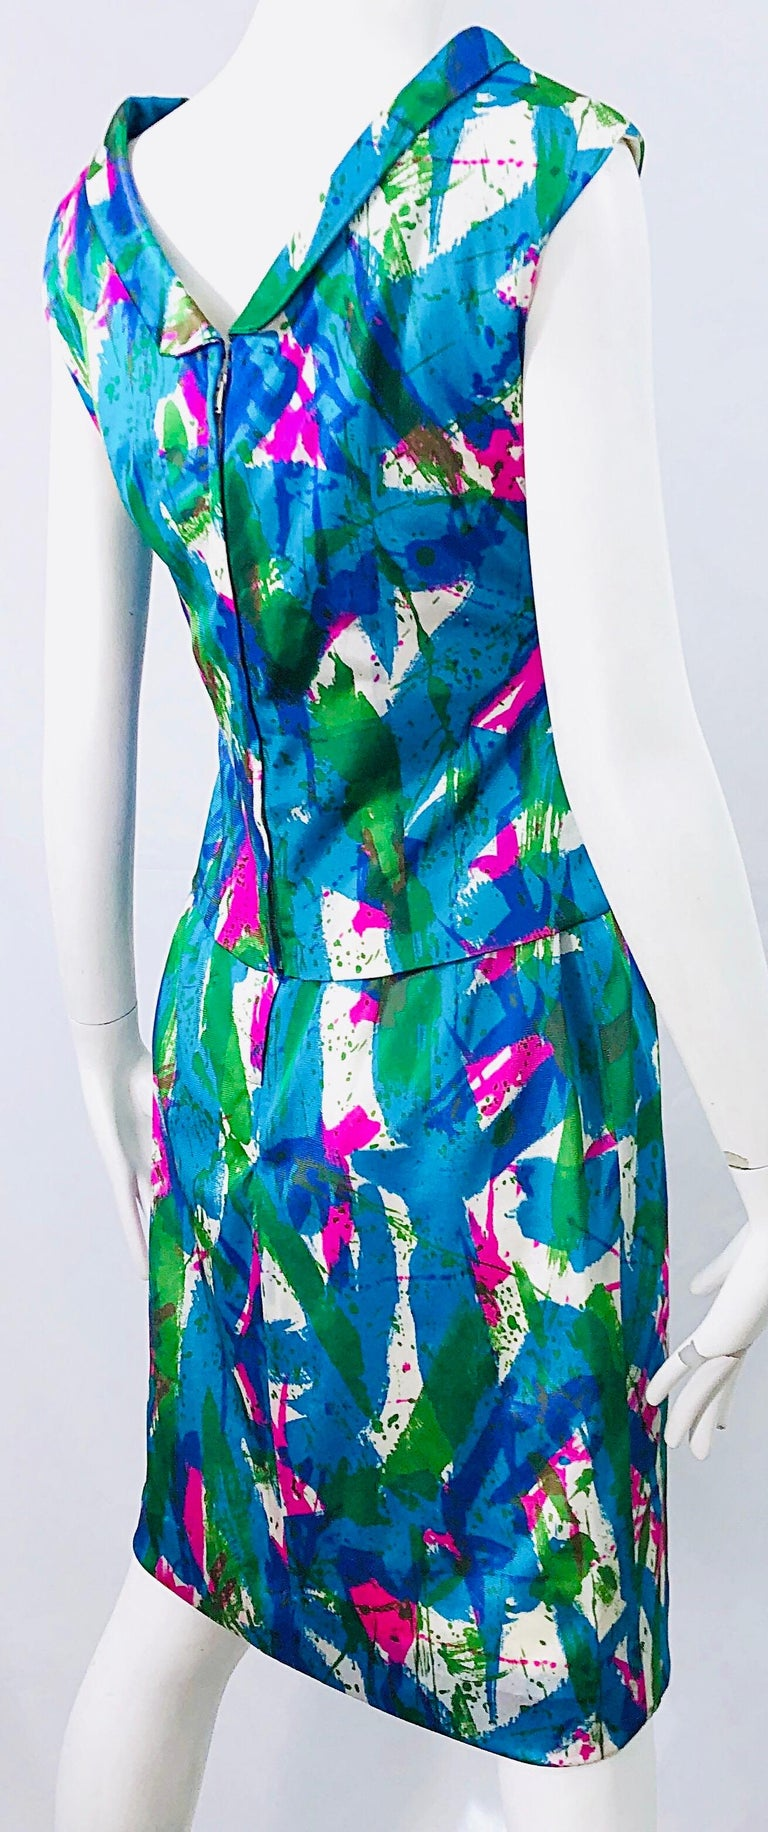 Chic 1960s Neon Abstract Print Two Piece Vintage 60s Sheath Dress + Top Blouse  For Sale 9